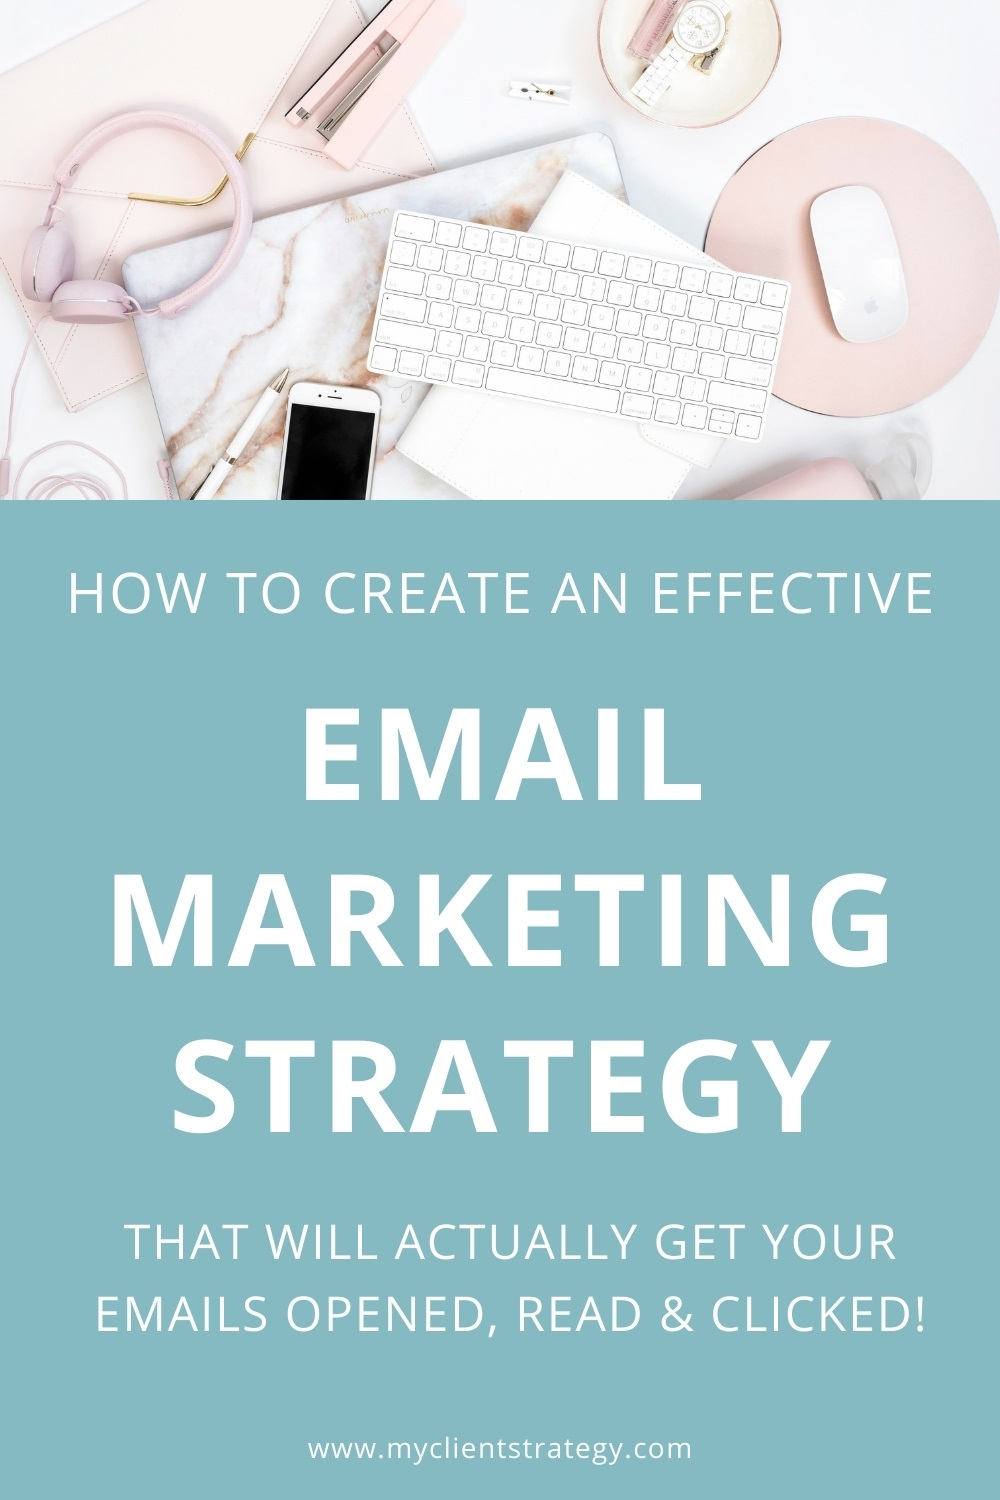 how to create an effective email marketing strategy